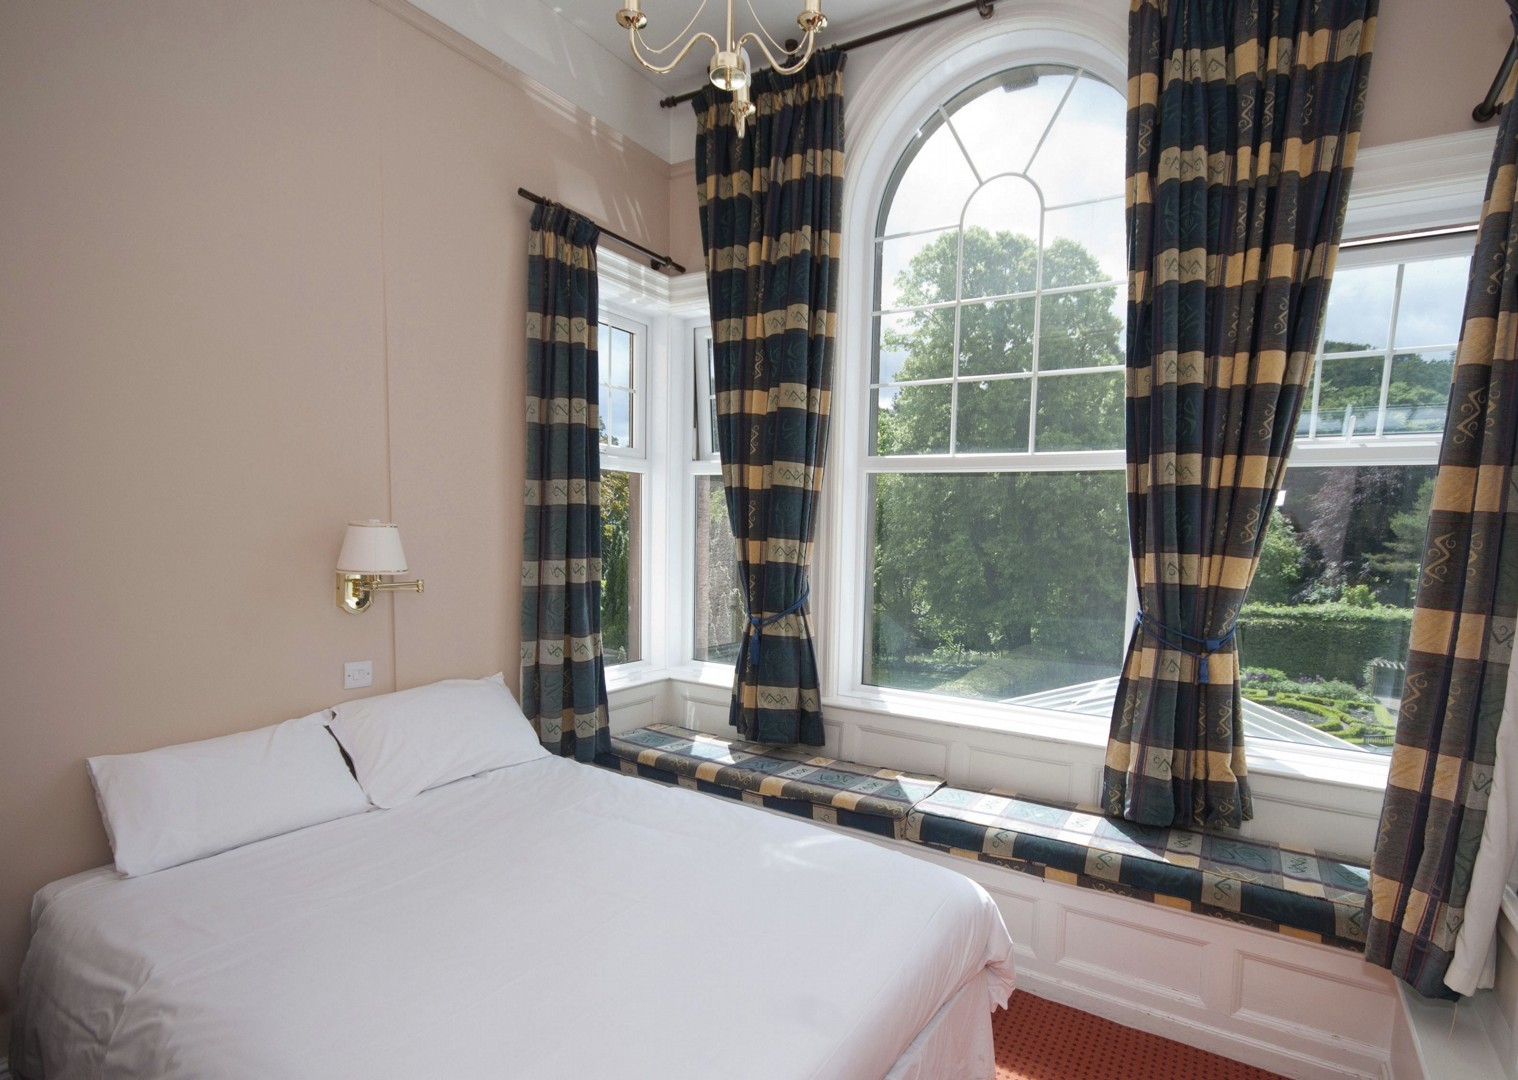 Derwentbank5.jpg - UK - Lake District - Derwent Water - Self-Guided Leisure Cycling Holiday - Leisure Cycling